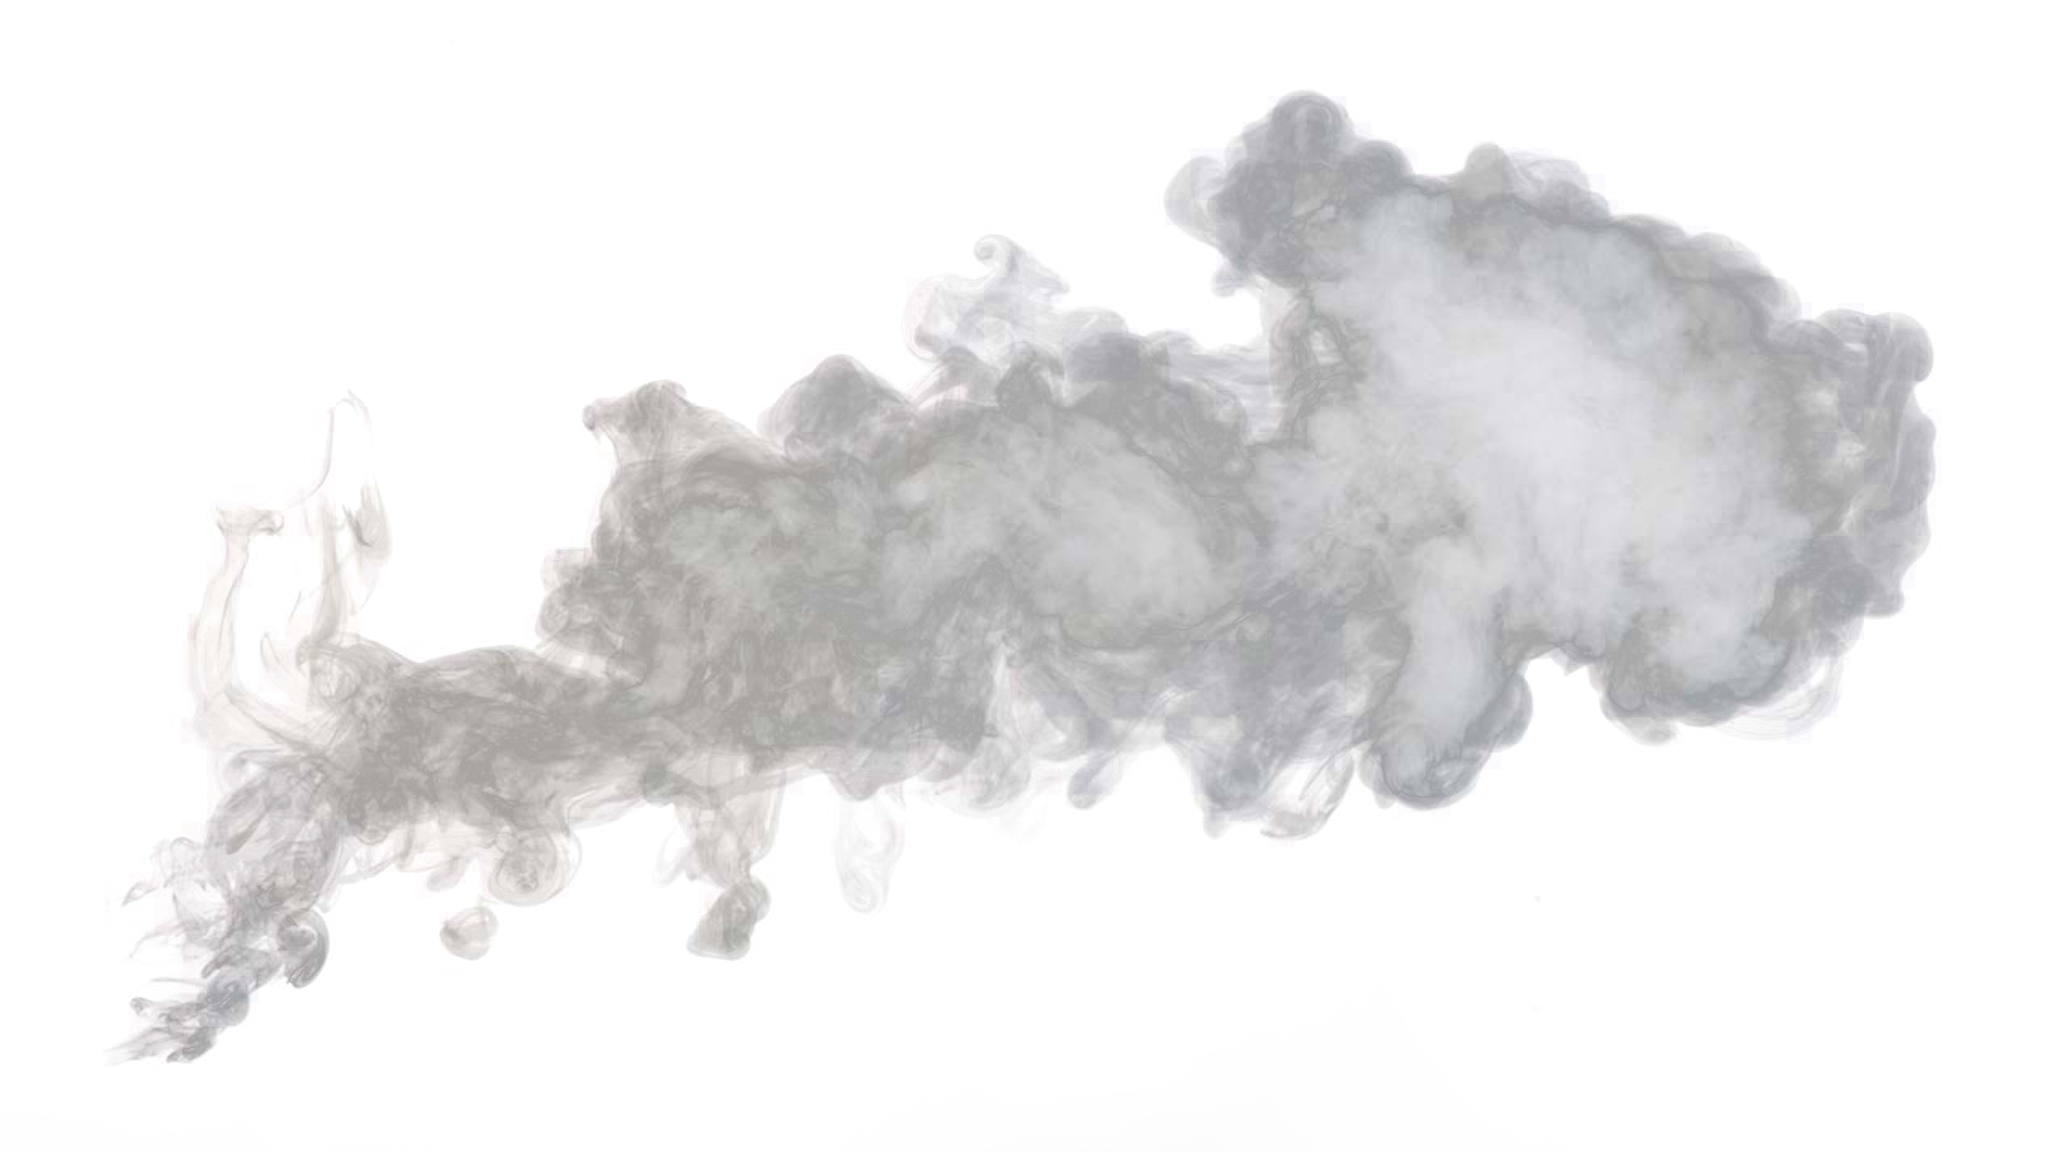 Smoke background png. Image purepng free transparent